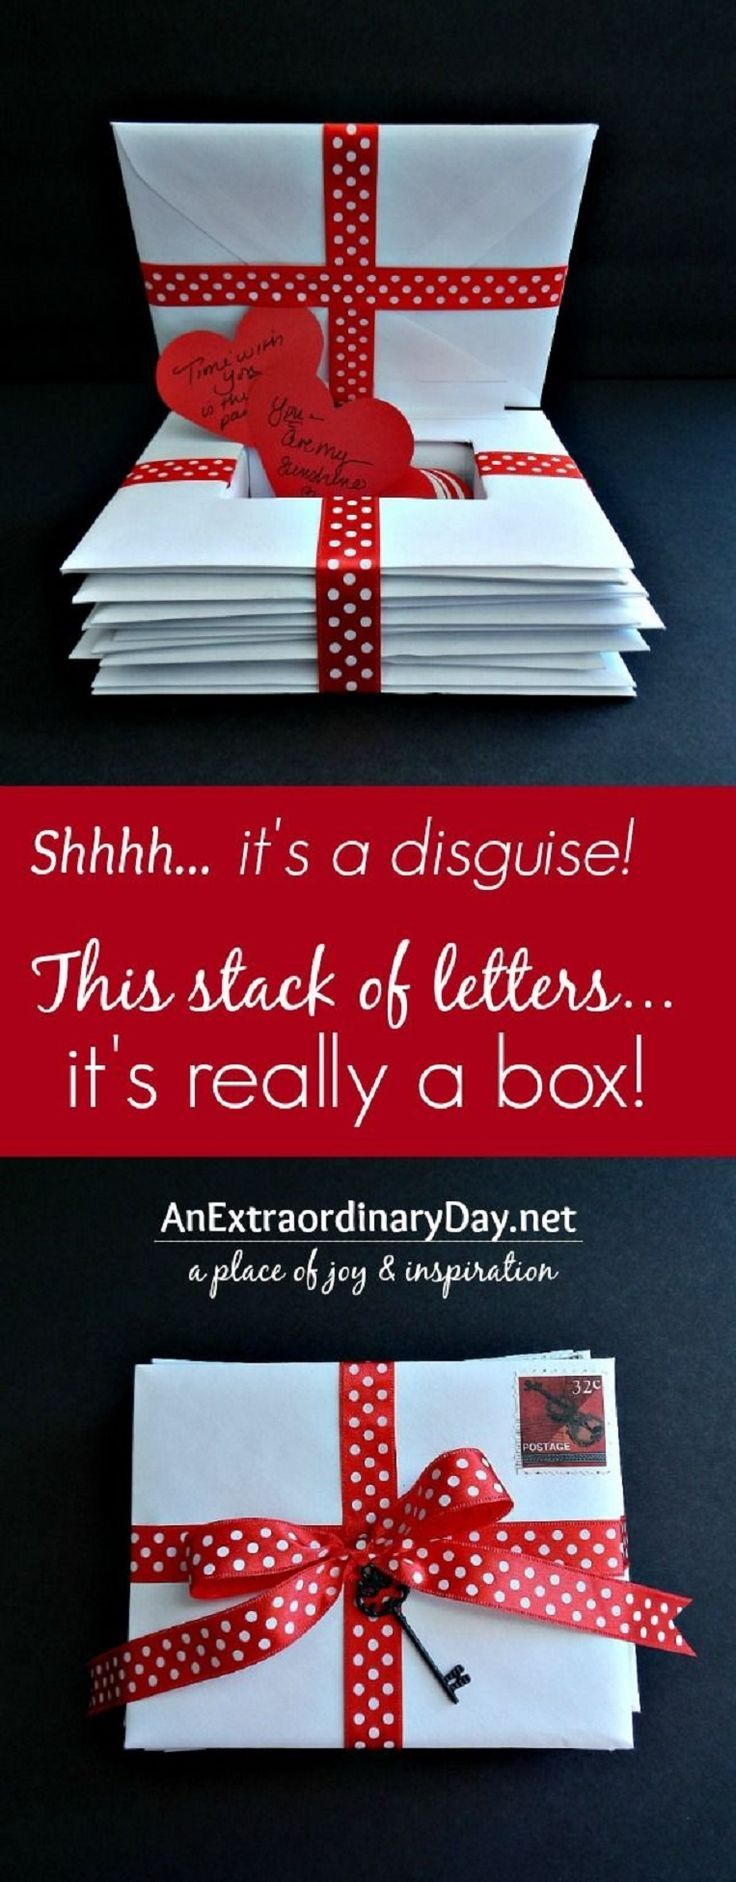 A Box Disguised as a Stack of Letters  Filled with Words of